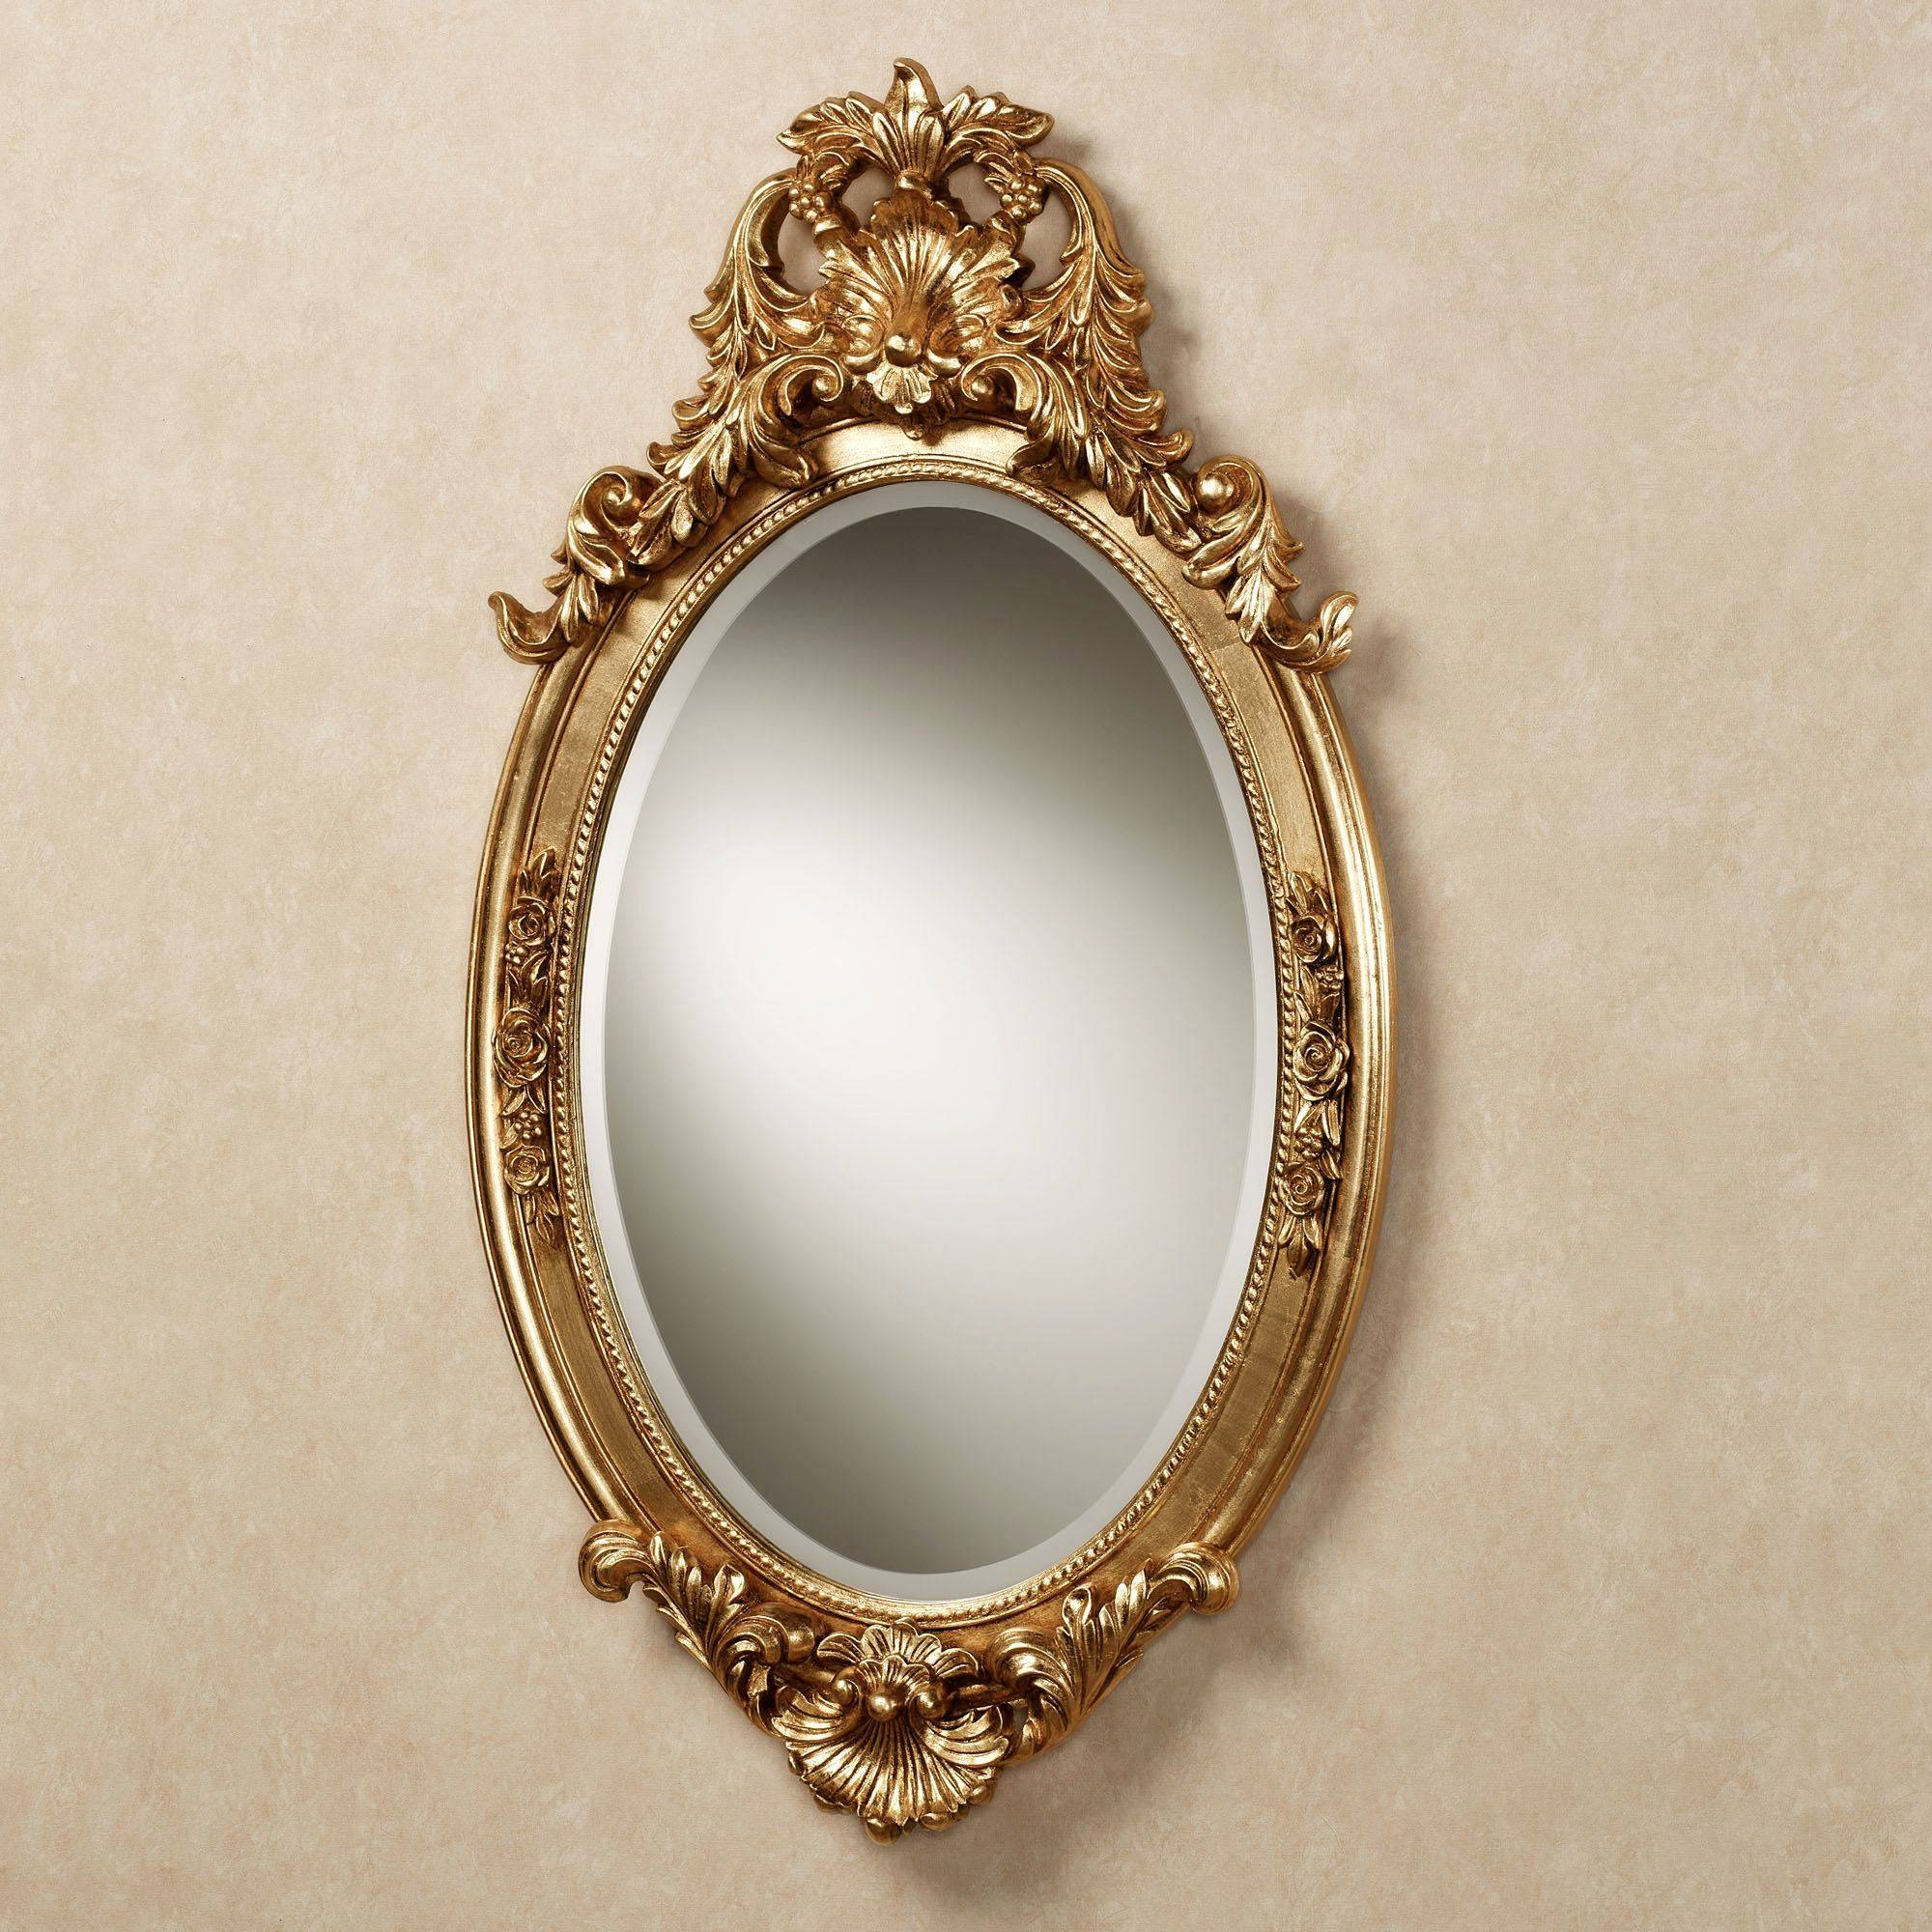 Triple Oval Wall Mirror - Oval Wall Mirror For The Elegant One To for Triple Oval Wall Mirrors (Image 21 of 25)